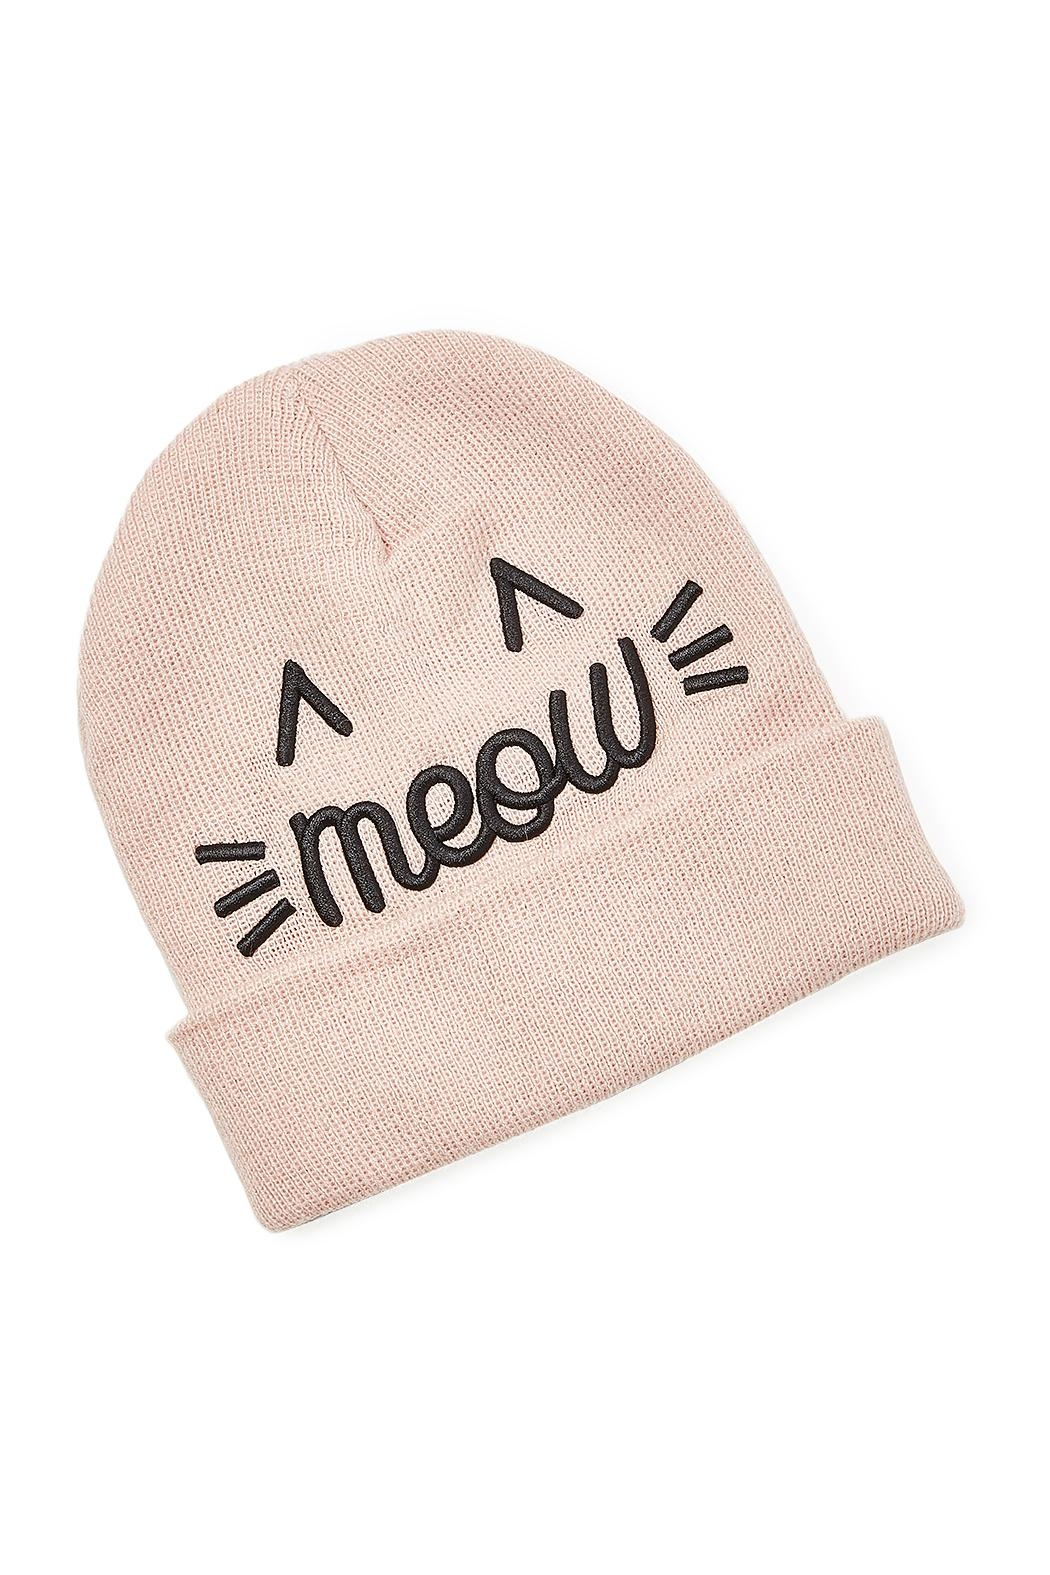 david and young Meow Embroidered Beanie - Front Cropped Image